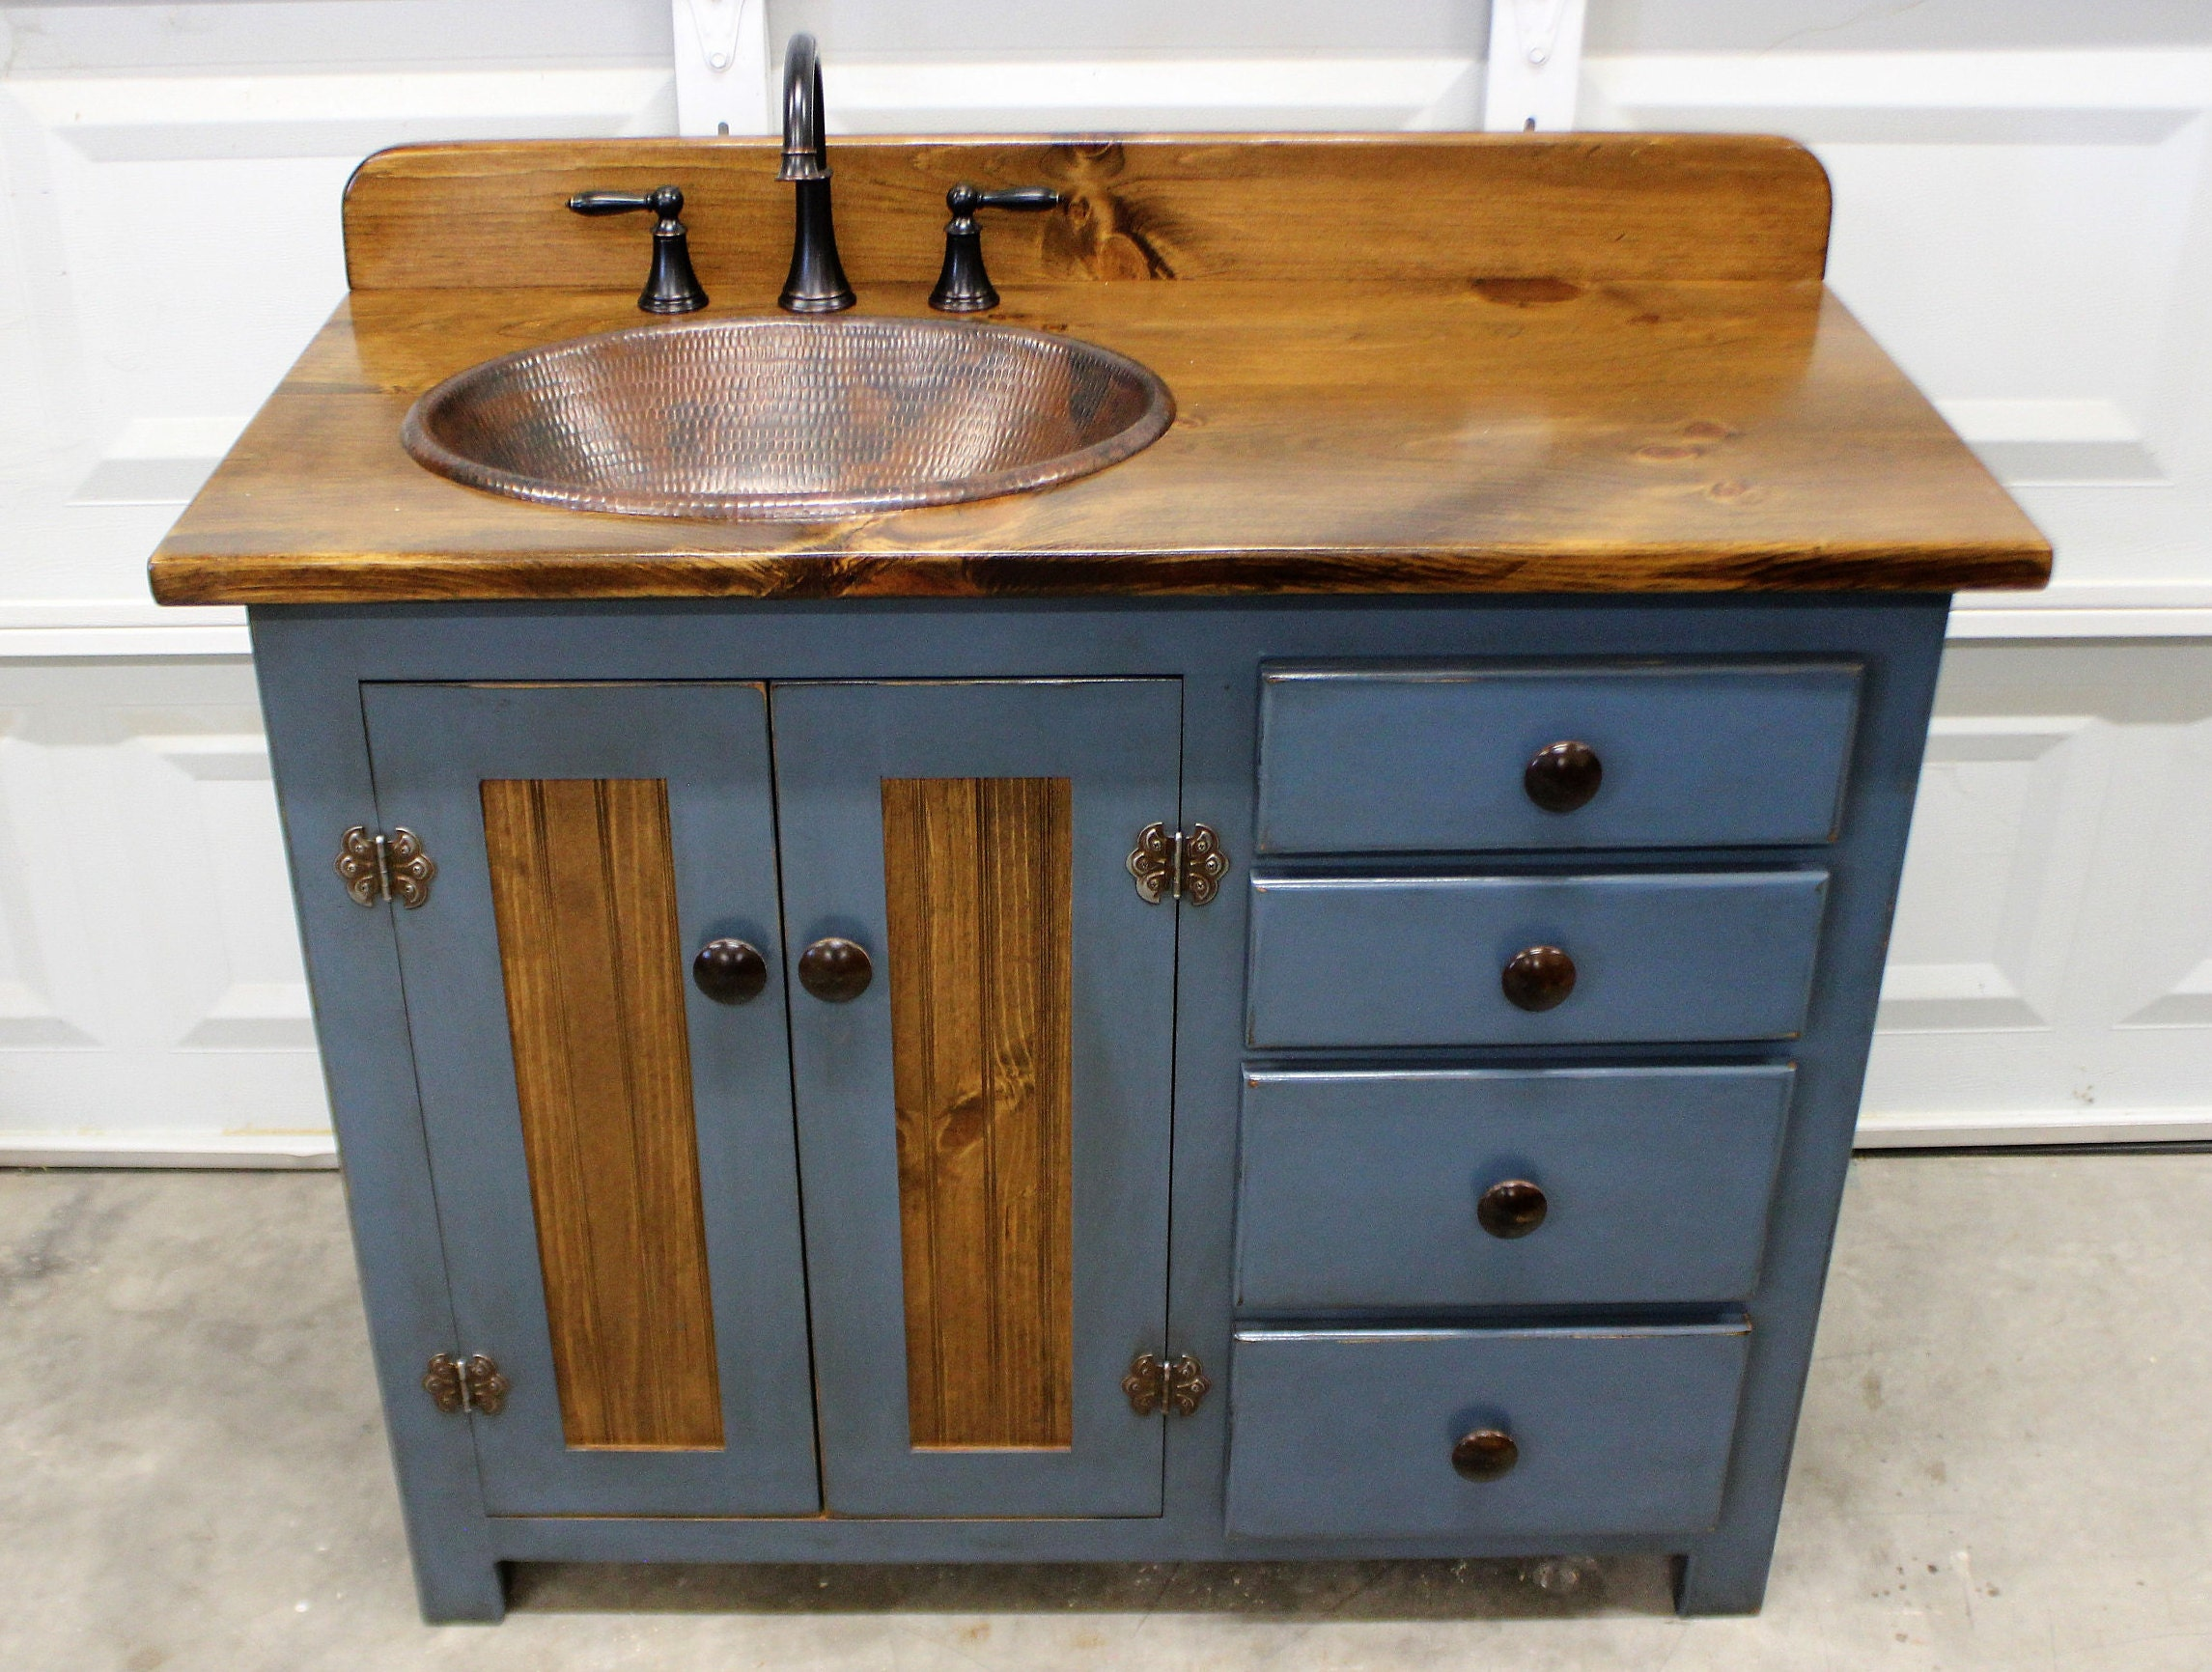 Rustic Farmhouse Vanity Copper Sink 42 Blue Bathroom Vanity Bathroom Vanity With Sink Rustic Vanity Farmhouse Vanity